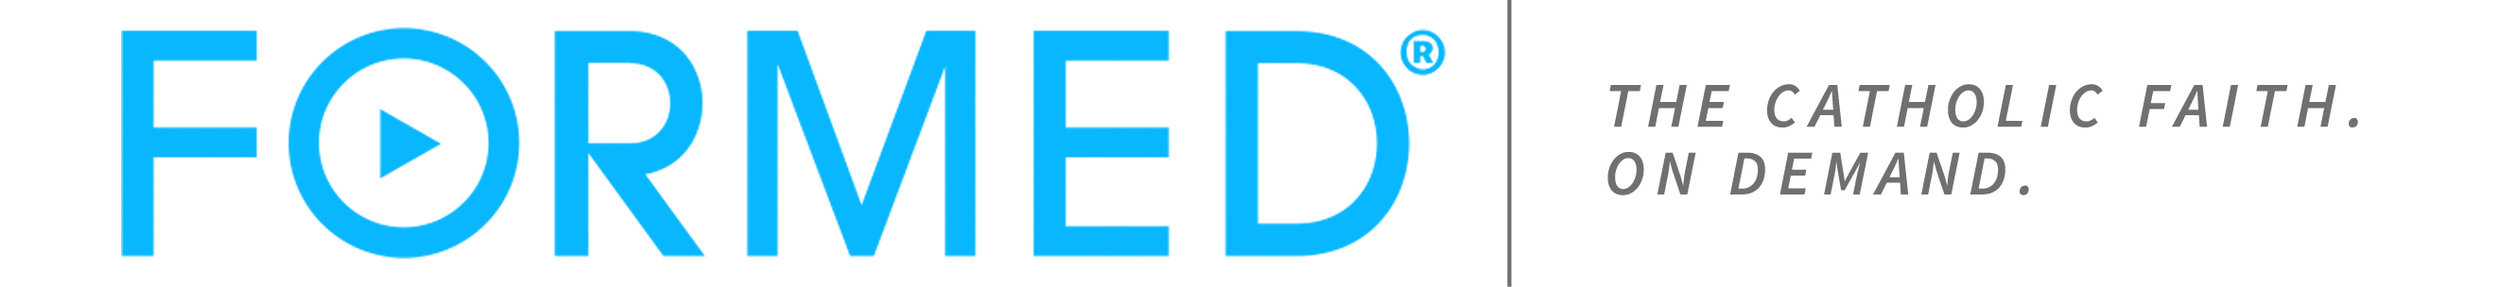 formed-logo-horizontal.jpg